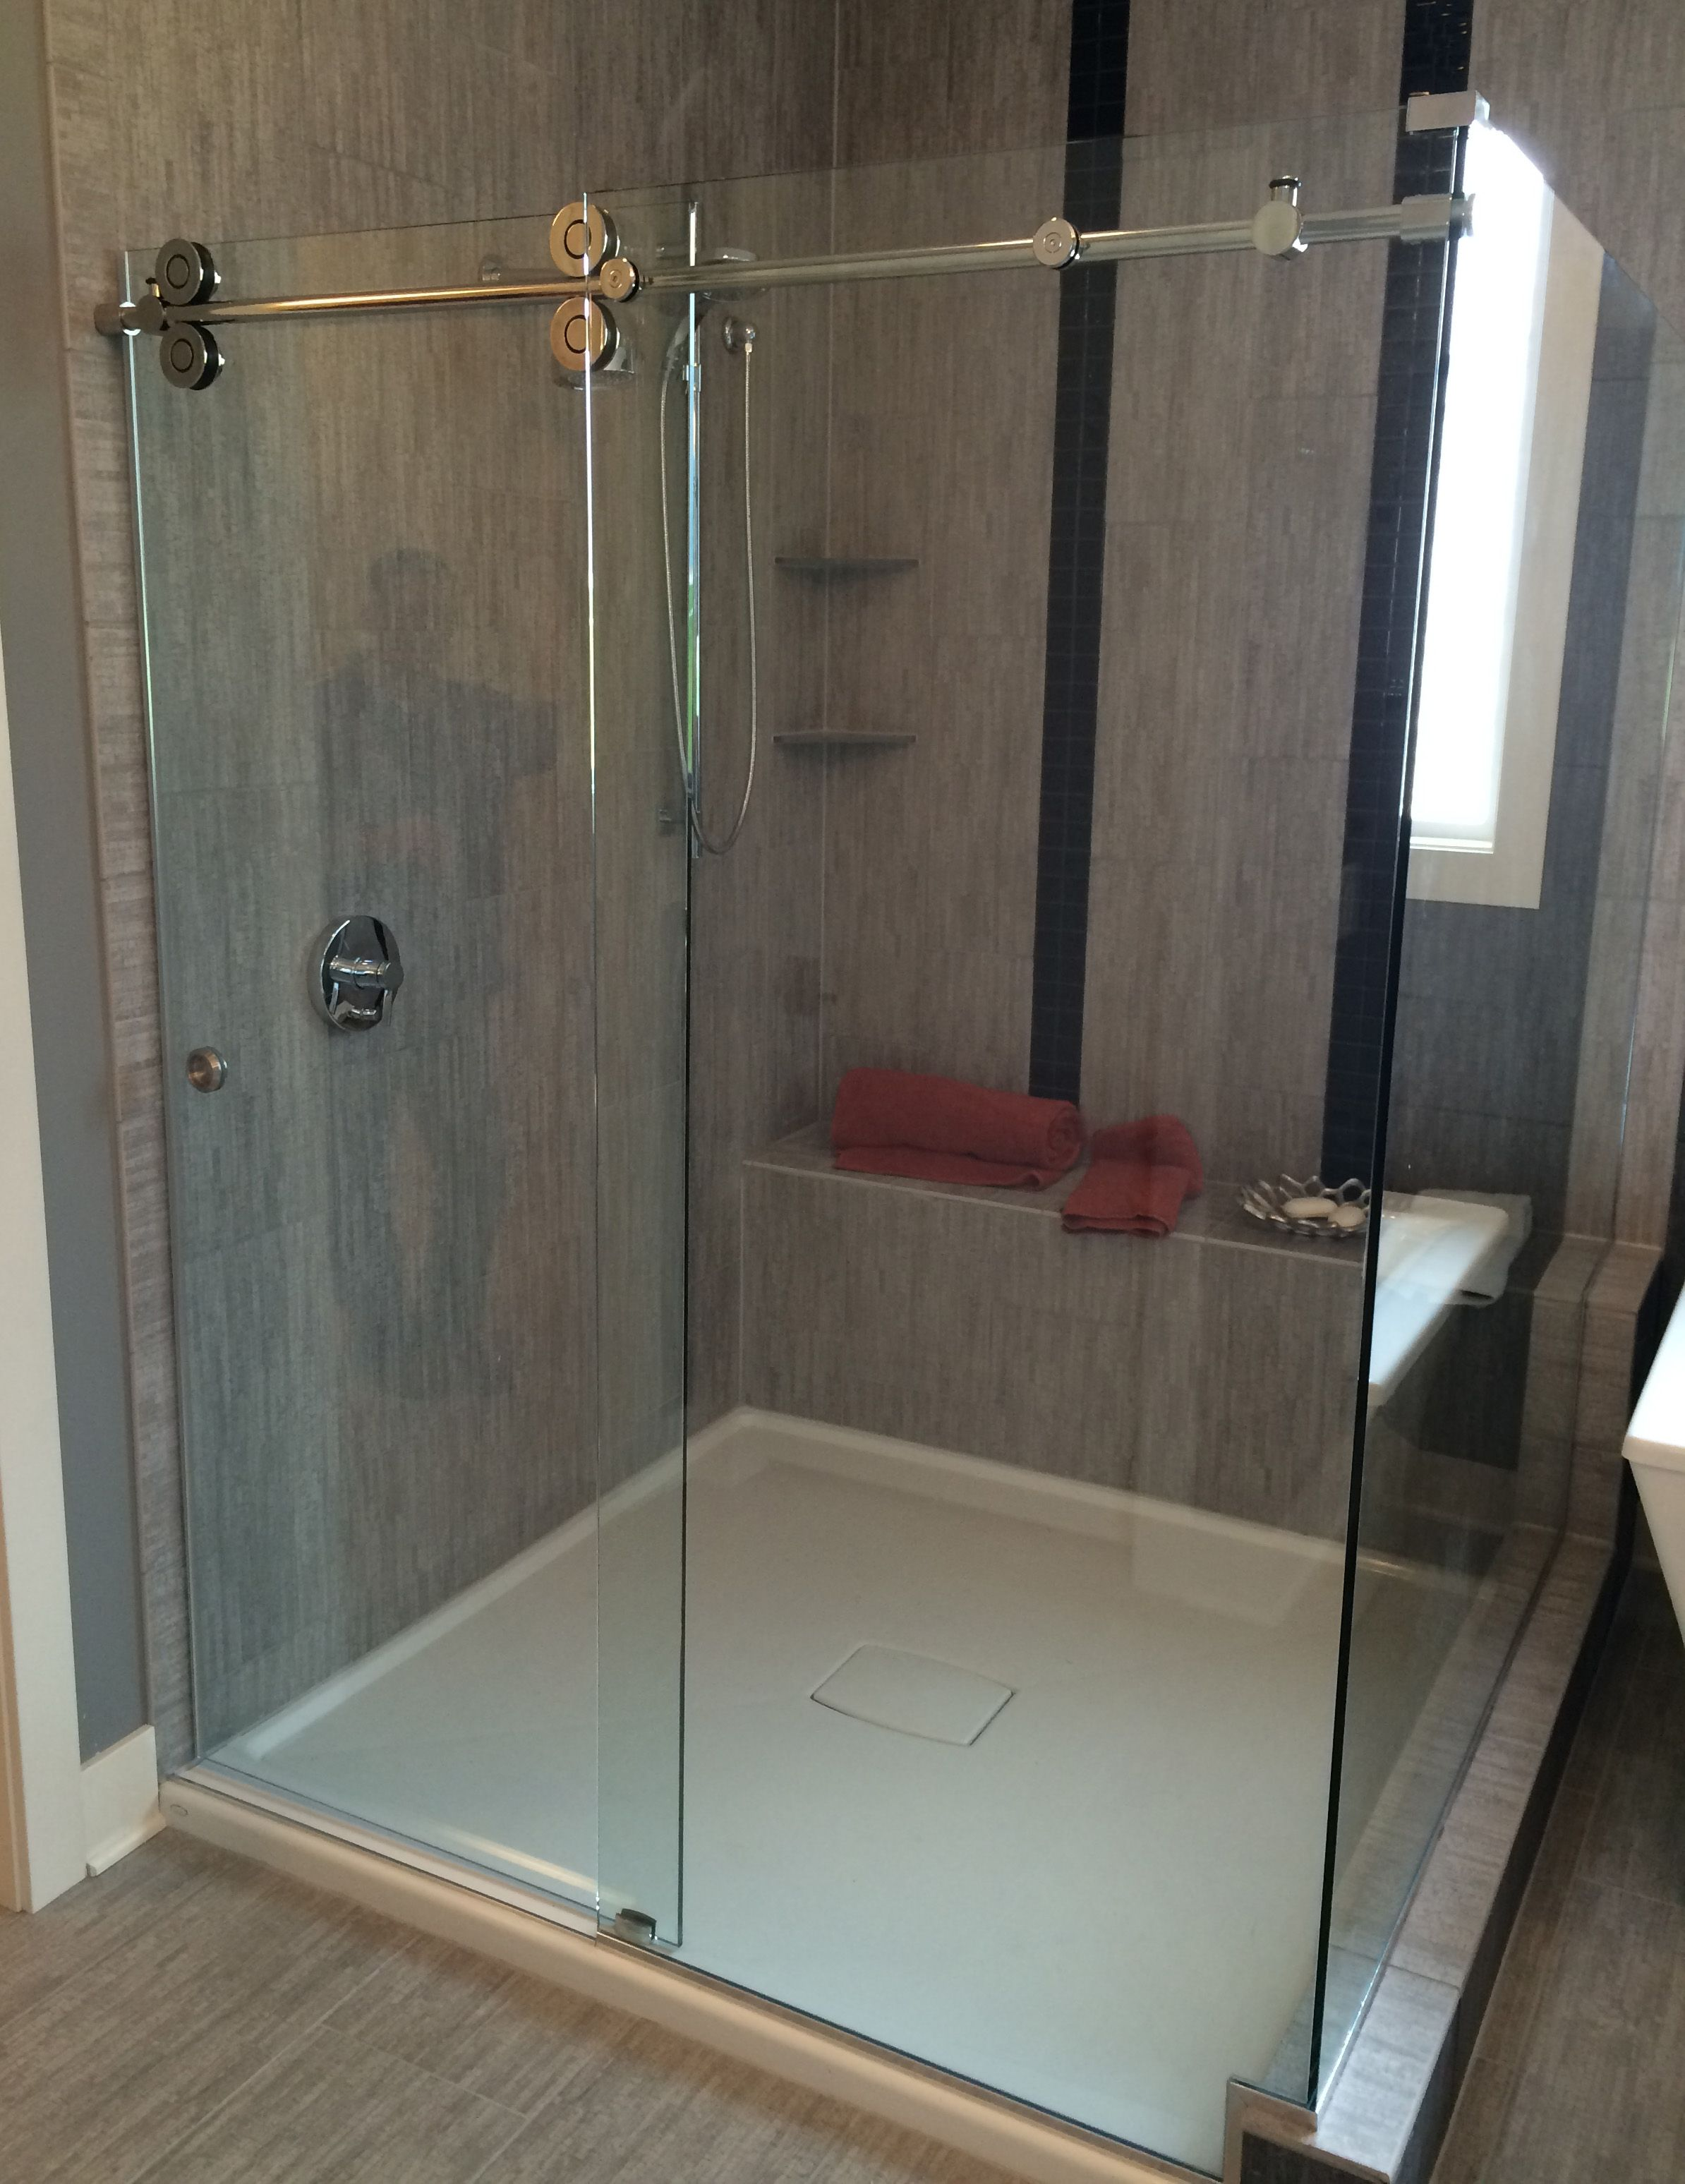 Ankeny Glass Is A Full Service Glass Shop Specializing In Glass Shower Doors,  Mirrors And Window Glass Repair.